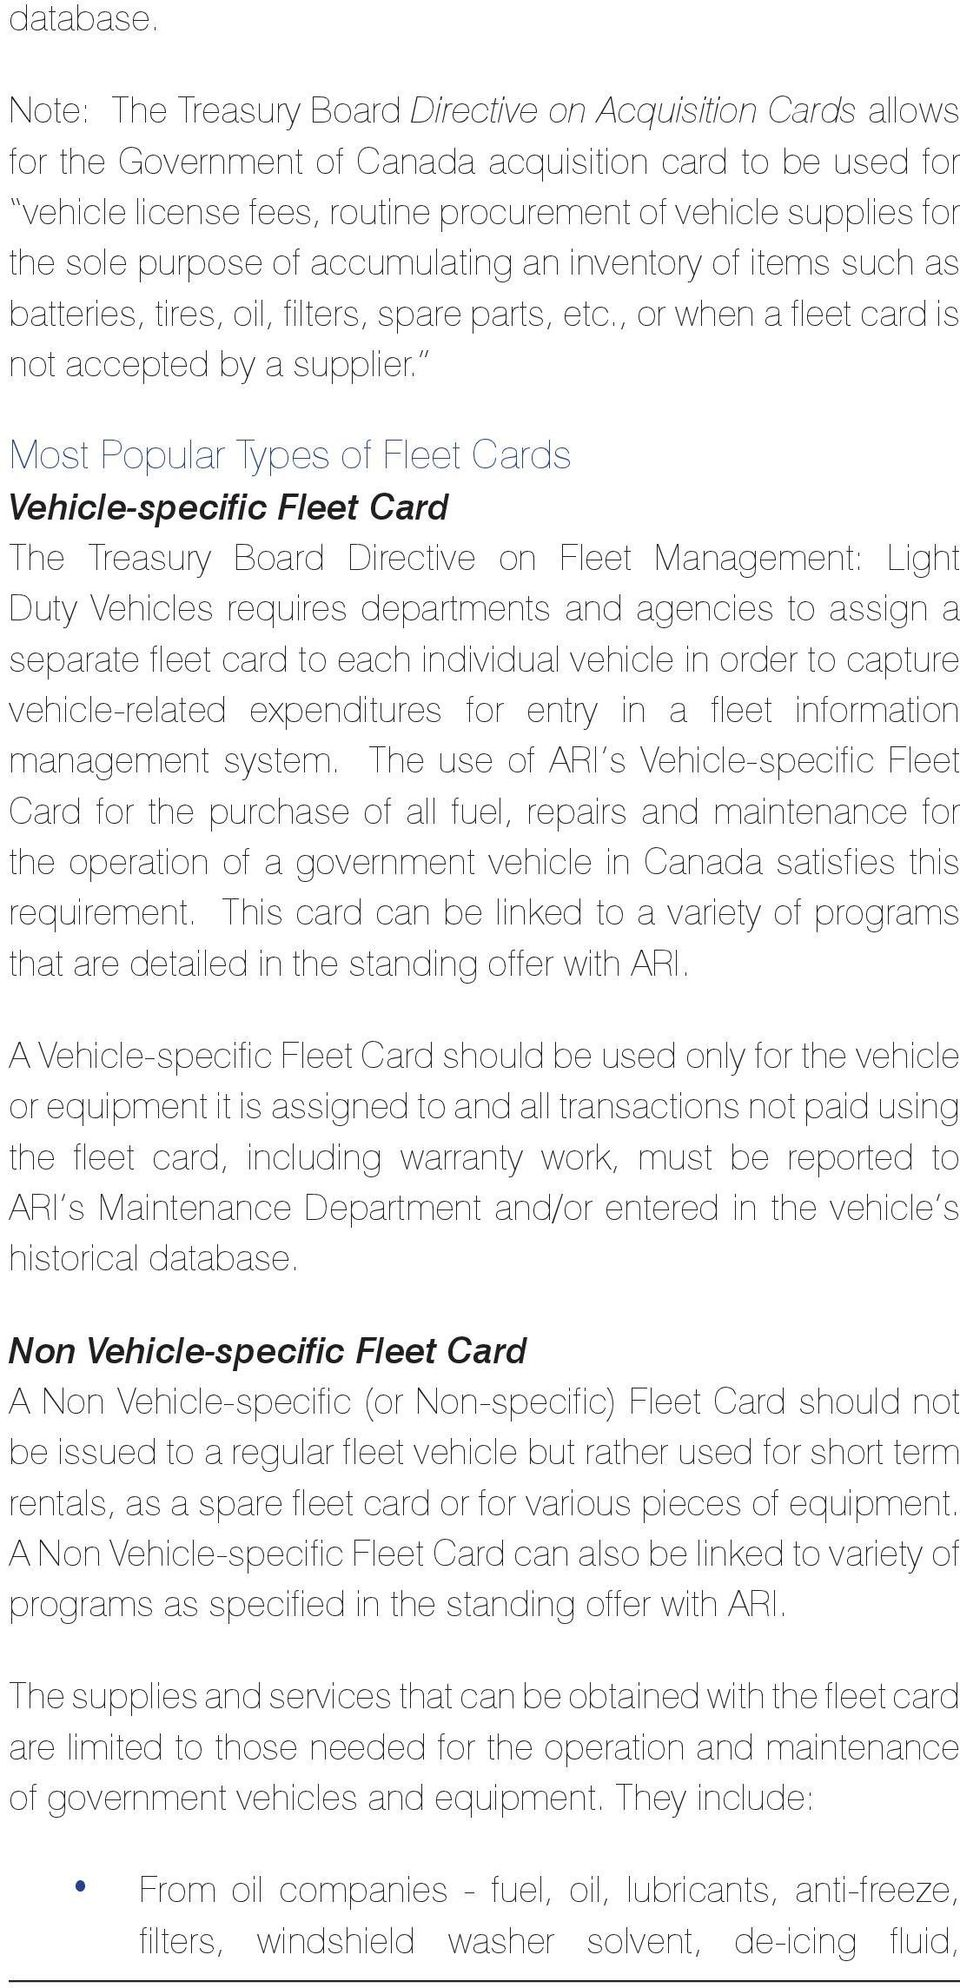 purpose of accumulating an inventory of items such as batteries, tires, oil, filters, spare parts, etc., or when a fleet card is not accepted by a supplier.